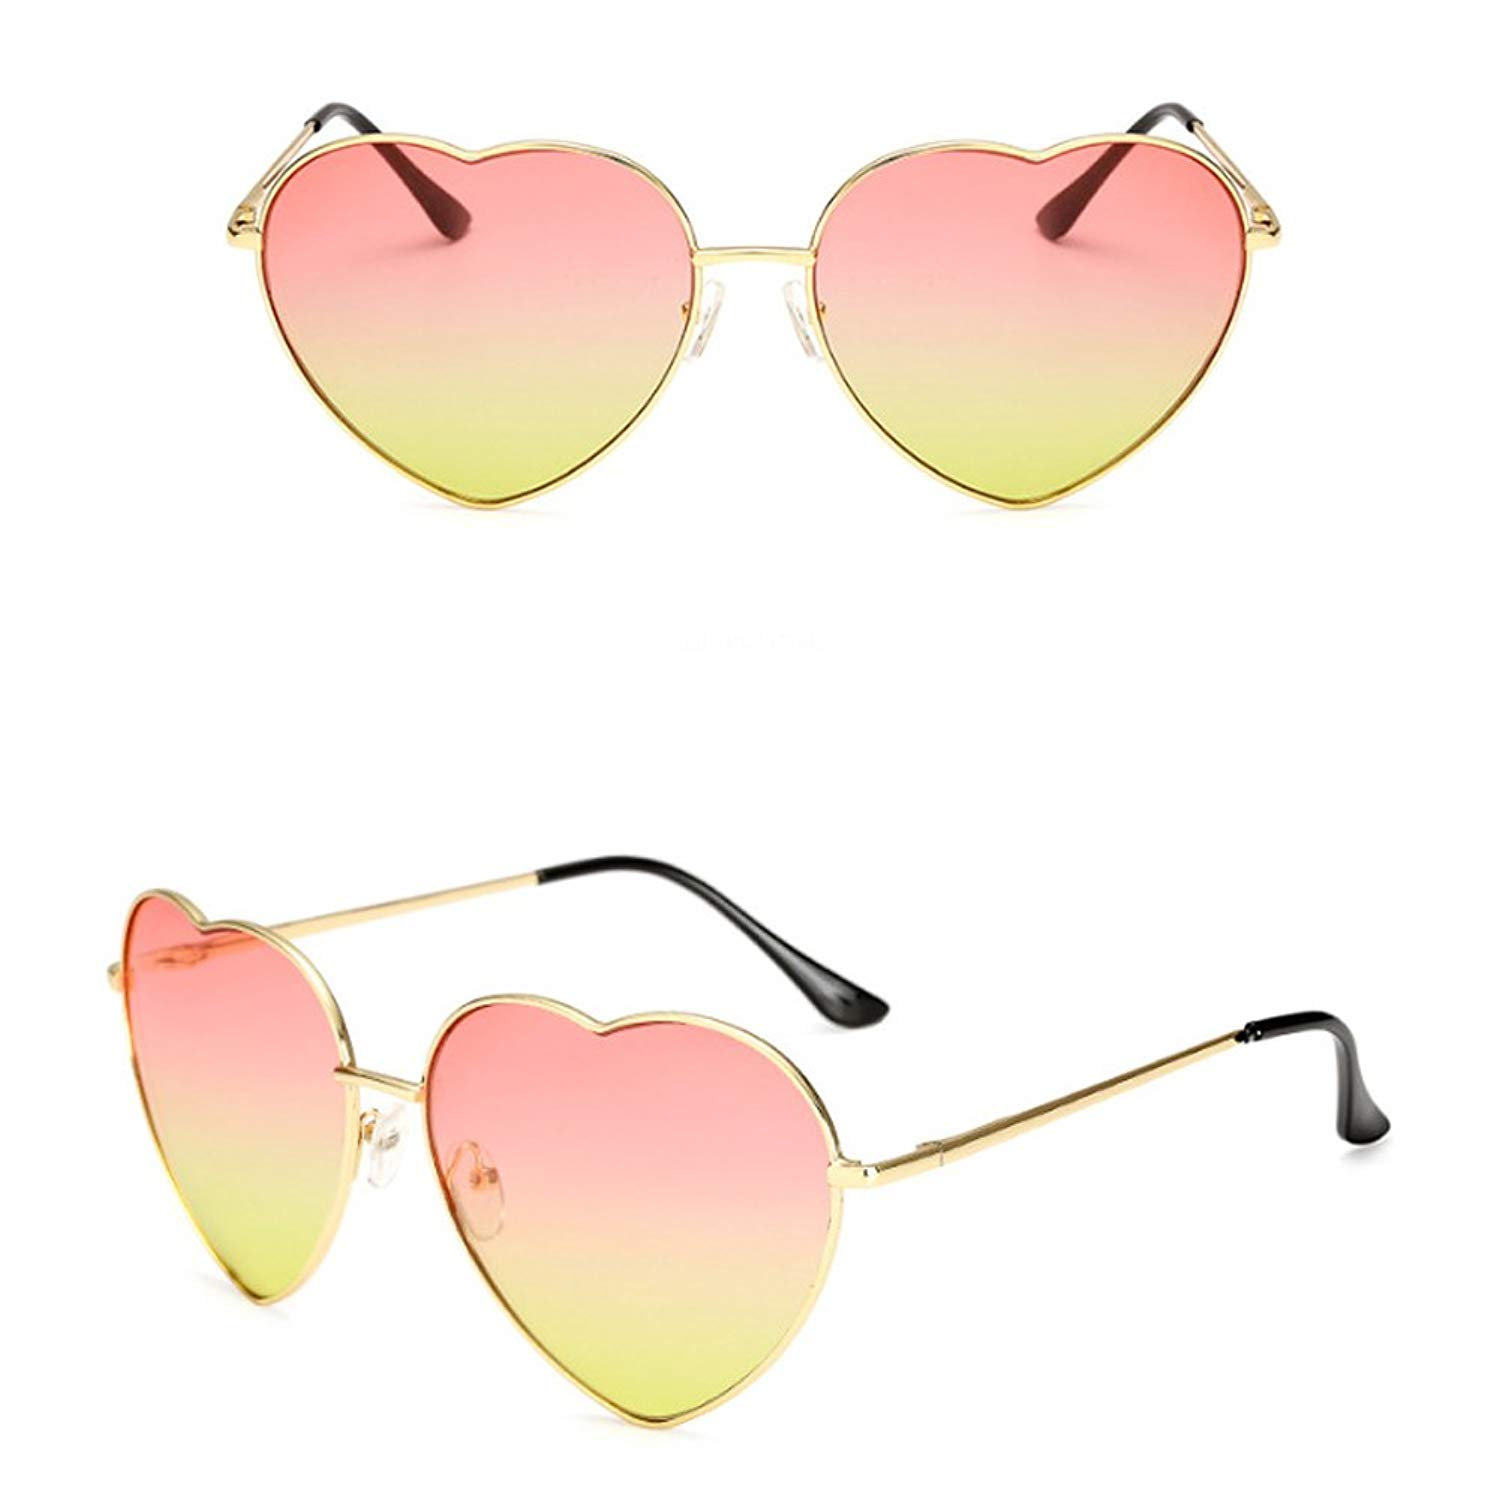 02f7d703bd7a GAMT Retro Heart Sunglasses With Thin Metal Fram Aviator Sunglasses For Men  And Women